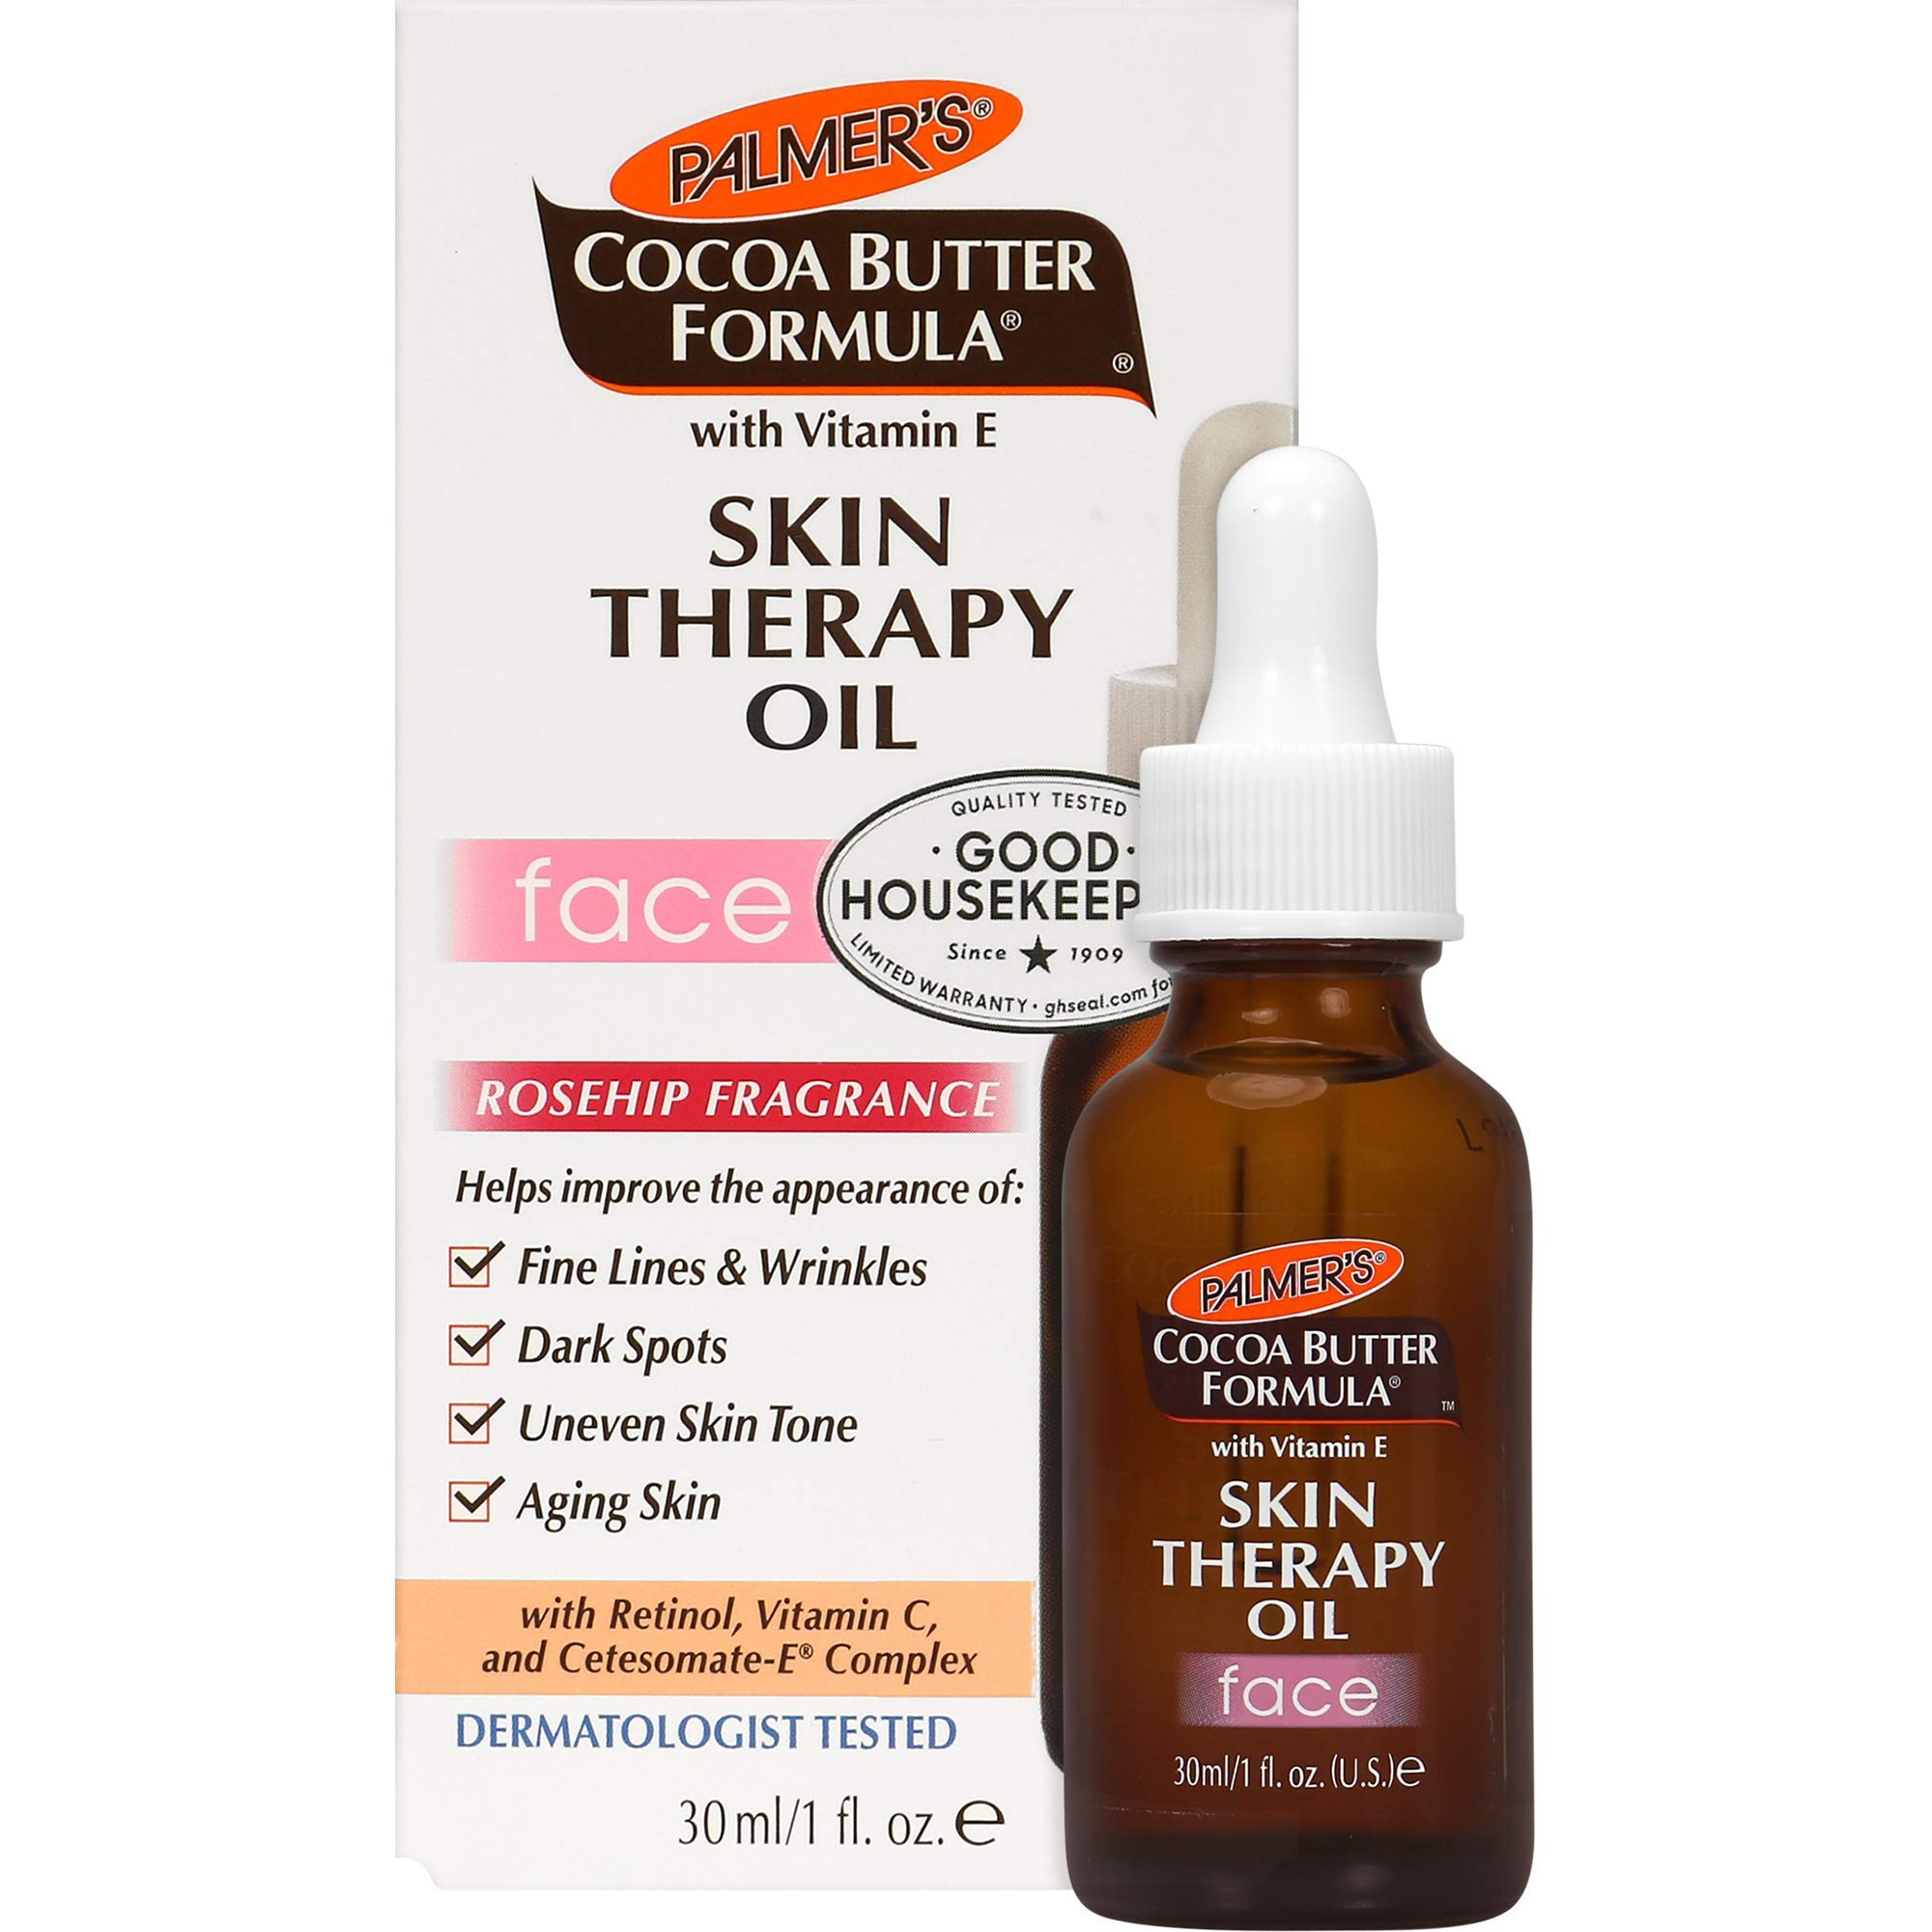 Palmer's Cocoa Butter Formula Moisturizing Skin Therapy Oil for Face with Vitamin E, Rosehip Fragrance ,1 Fl Oz (Pack of 1)